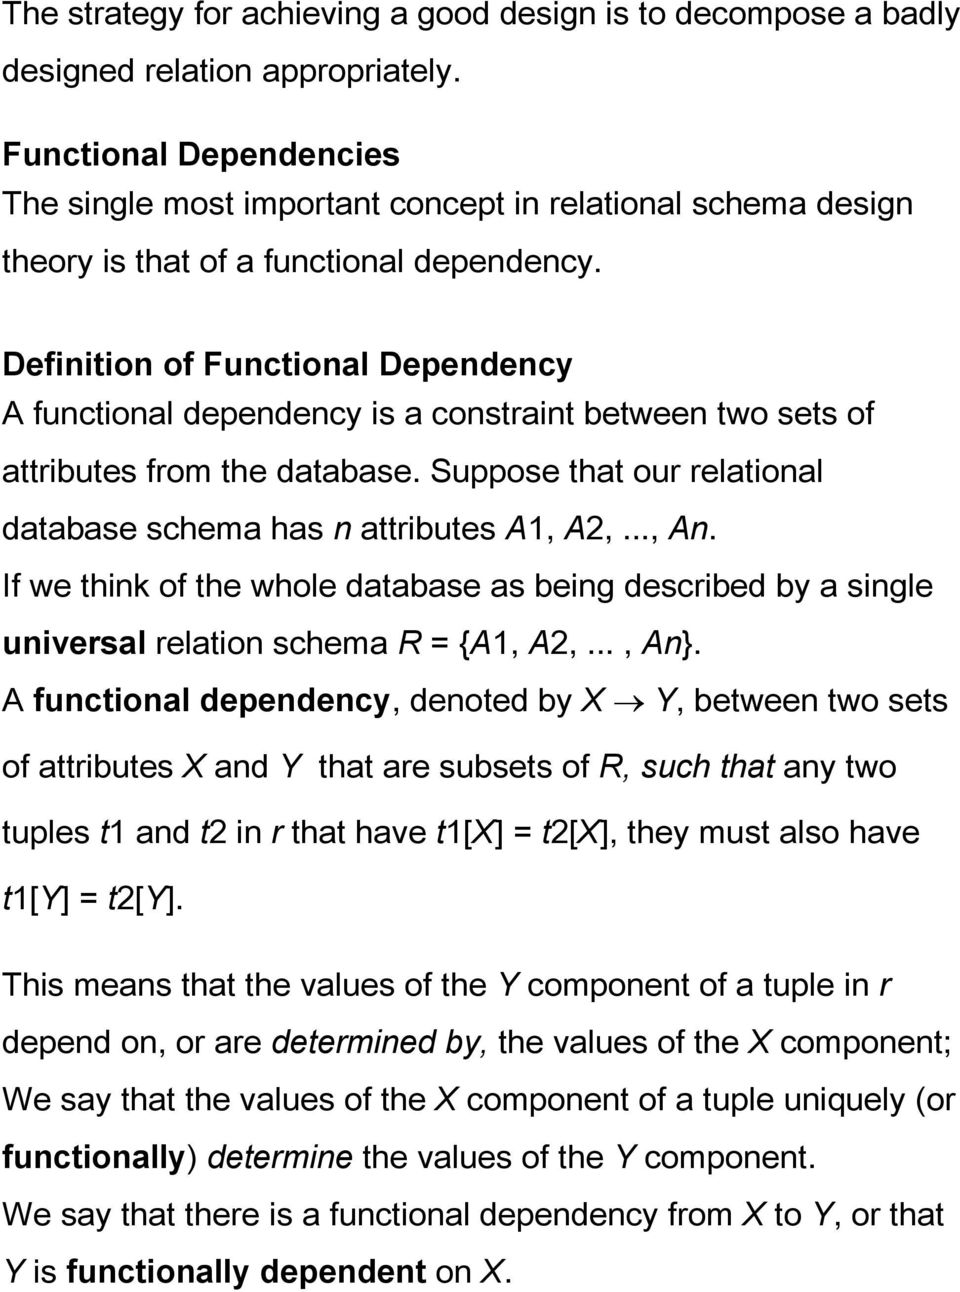 Definition of Functional Dependency A functional dependency is a constraint between two sets of attributes from the database. Suppose that our relational database schema has n attributes A1, A2,..., An.